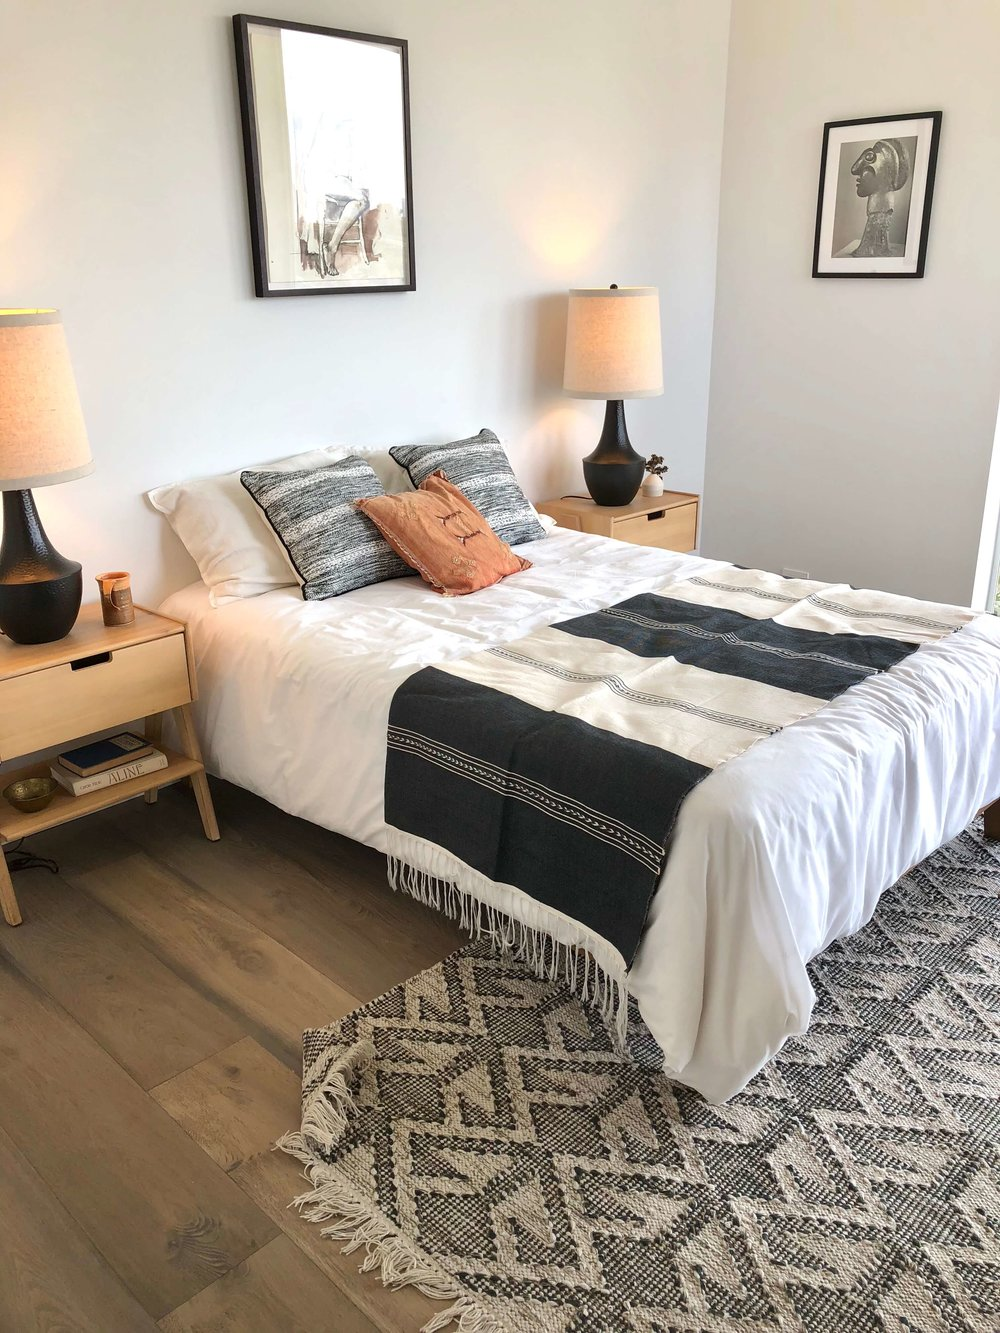 Black and white modern bedroom | California home tour